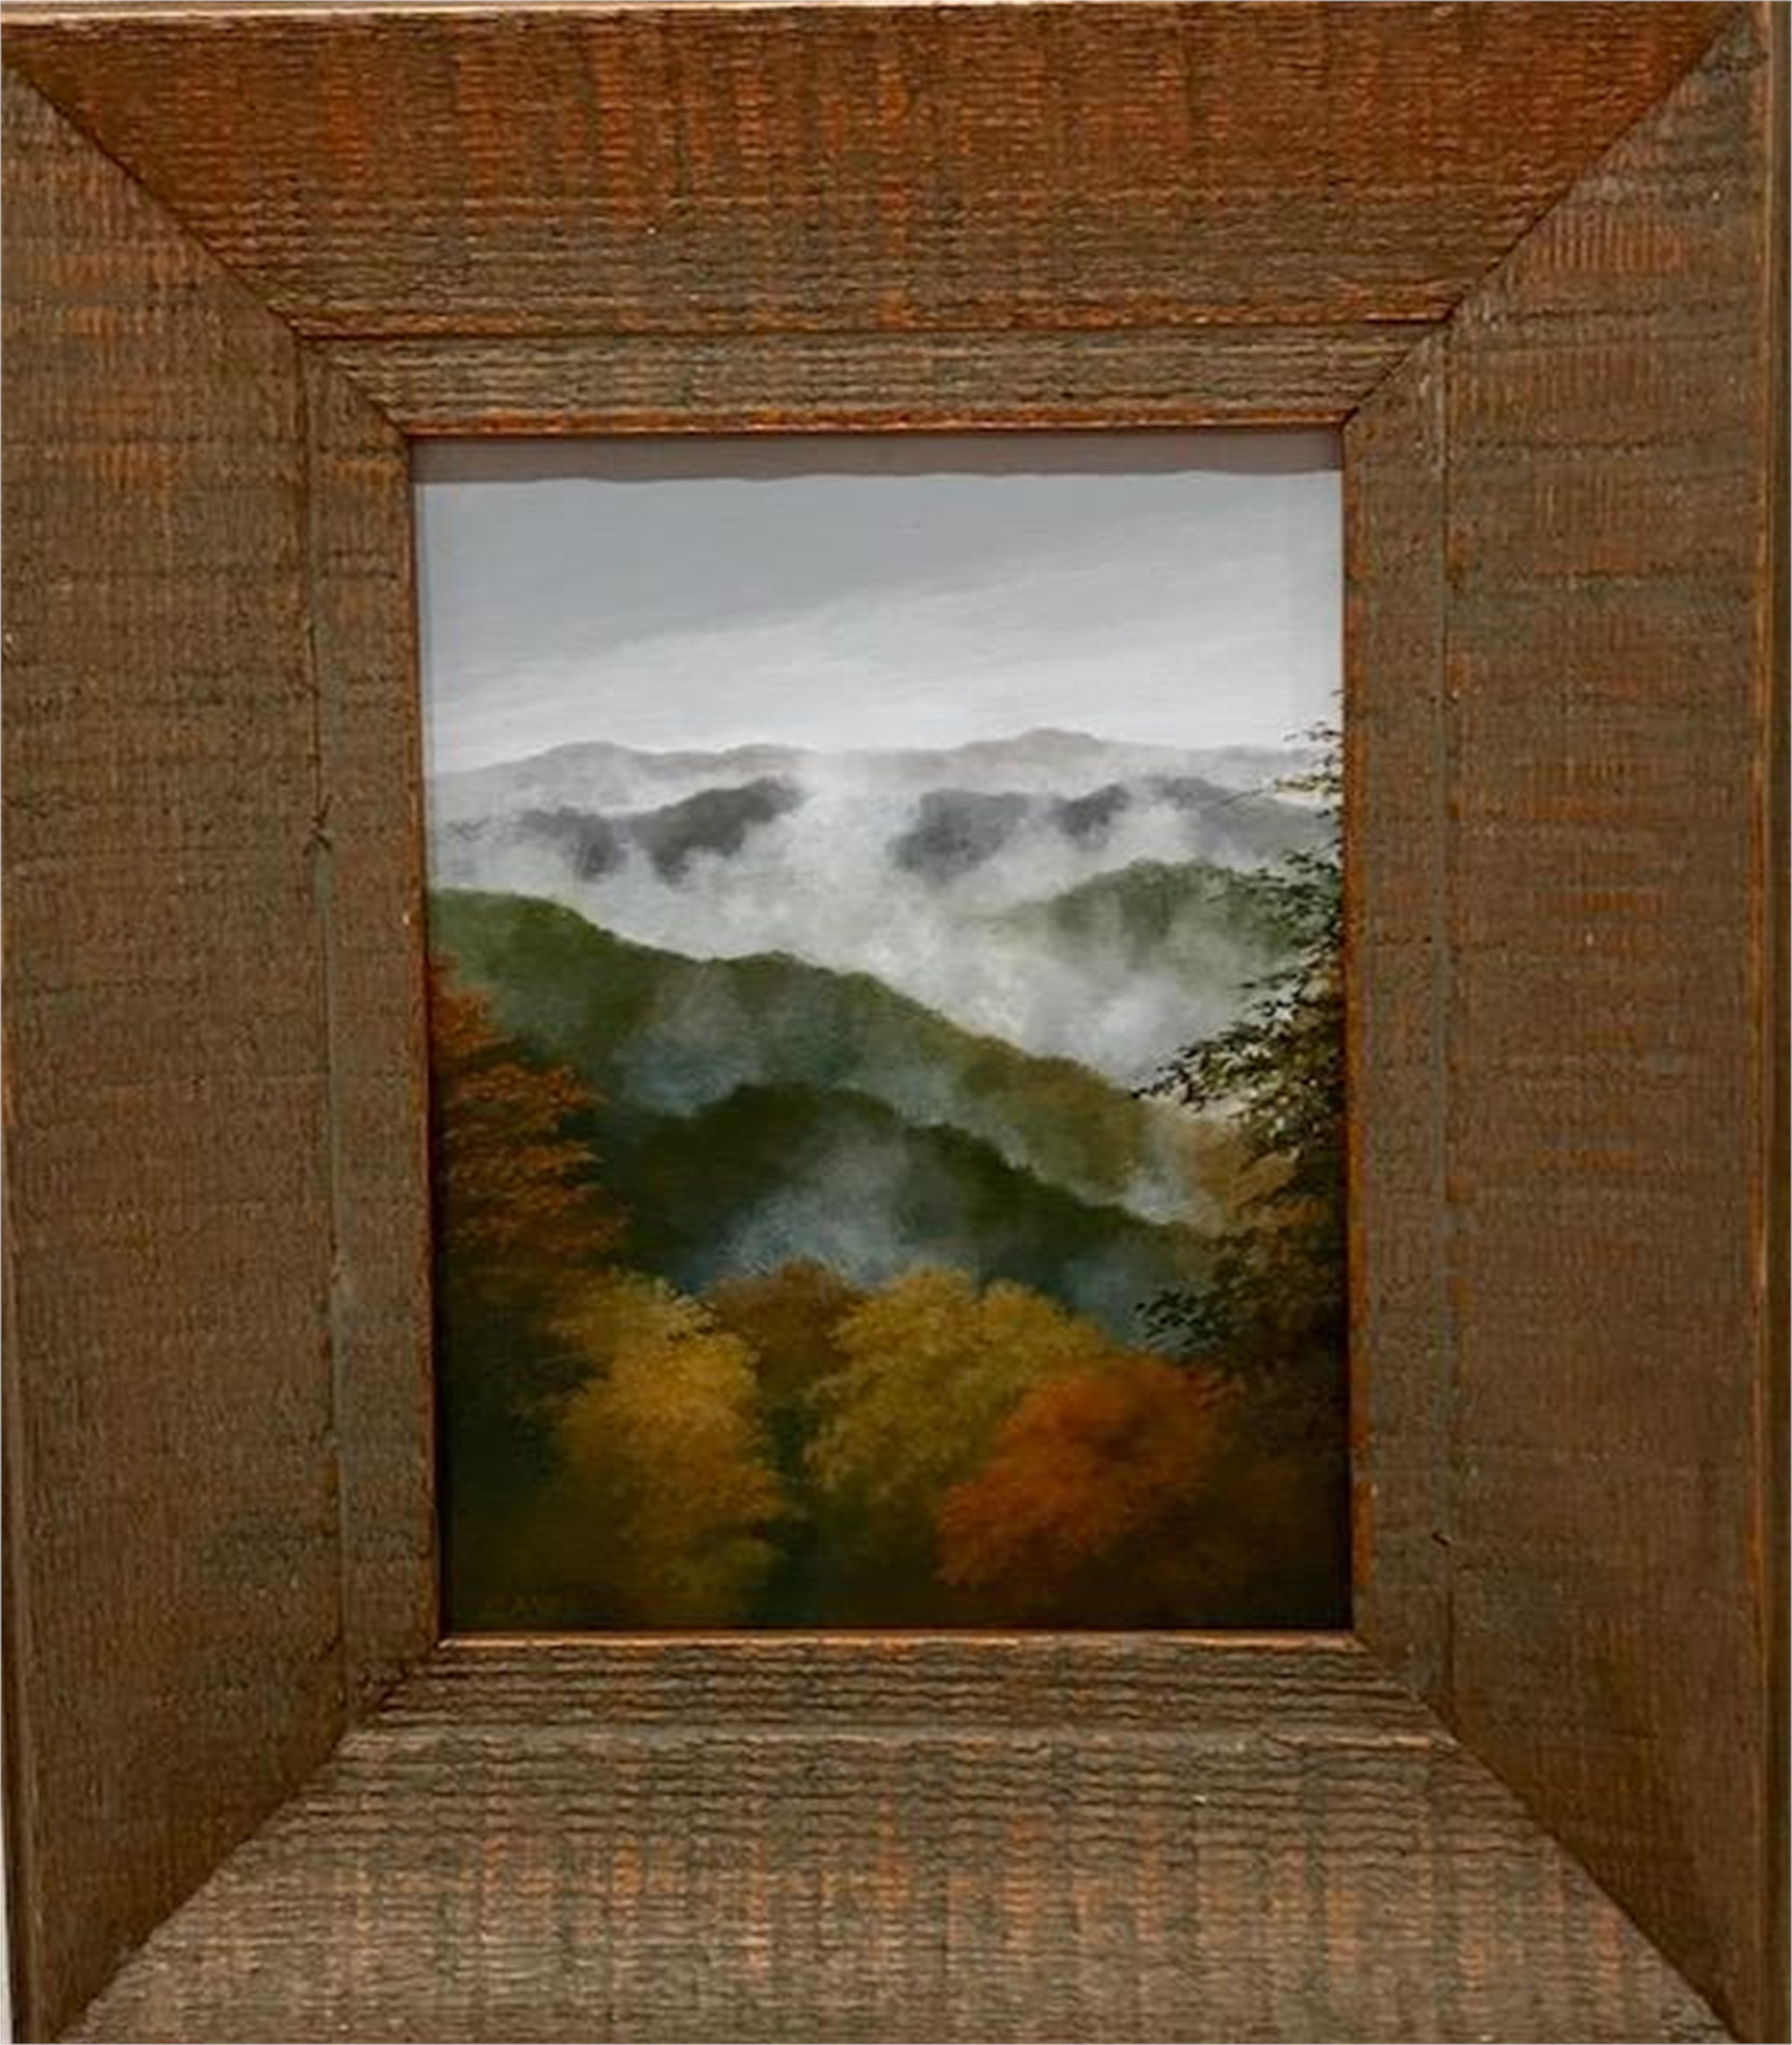 Overlook - Miniature Painting by Judith Edgington Bayes